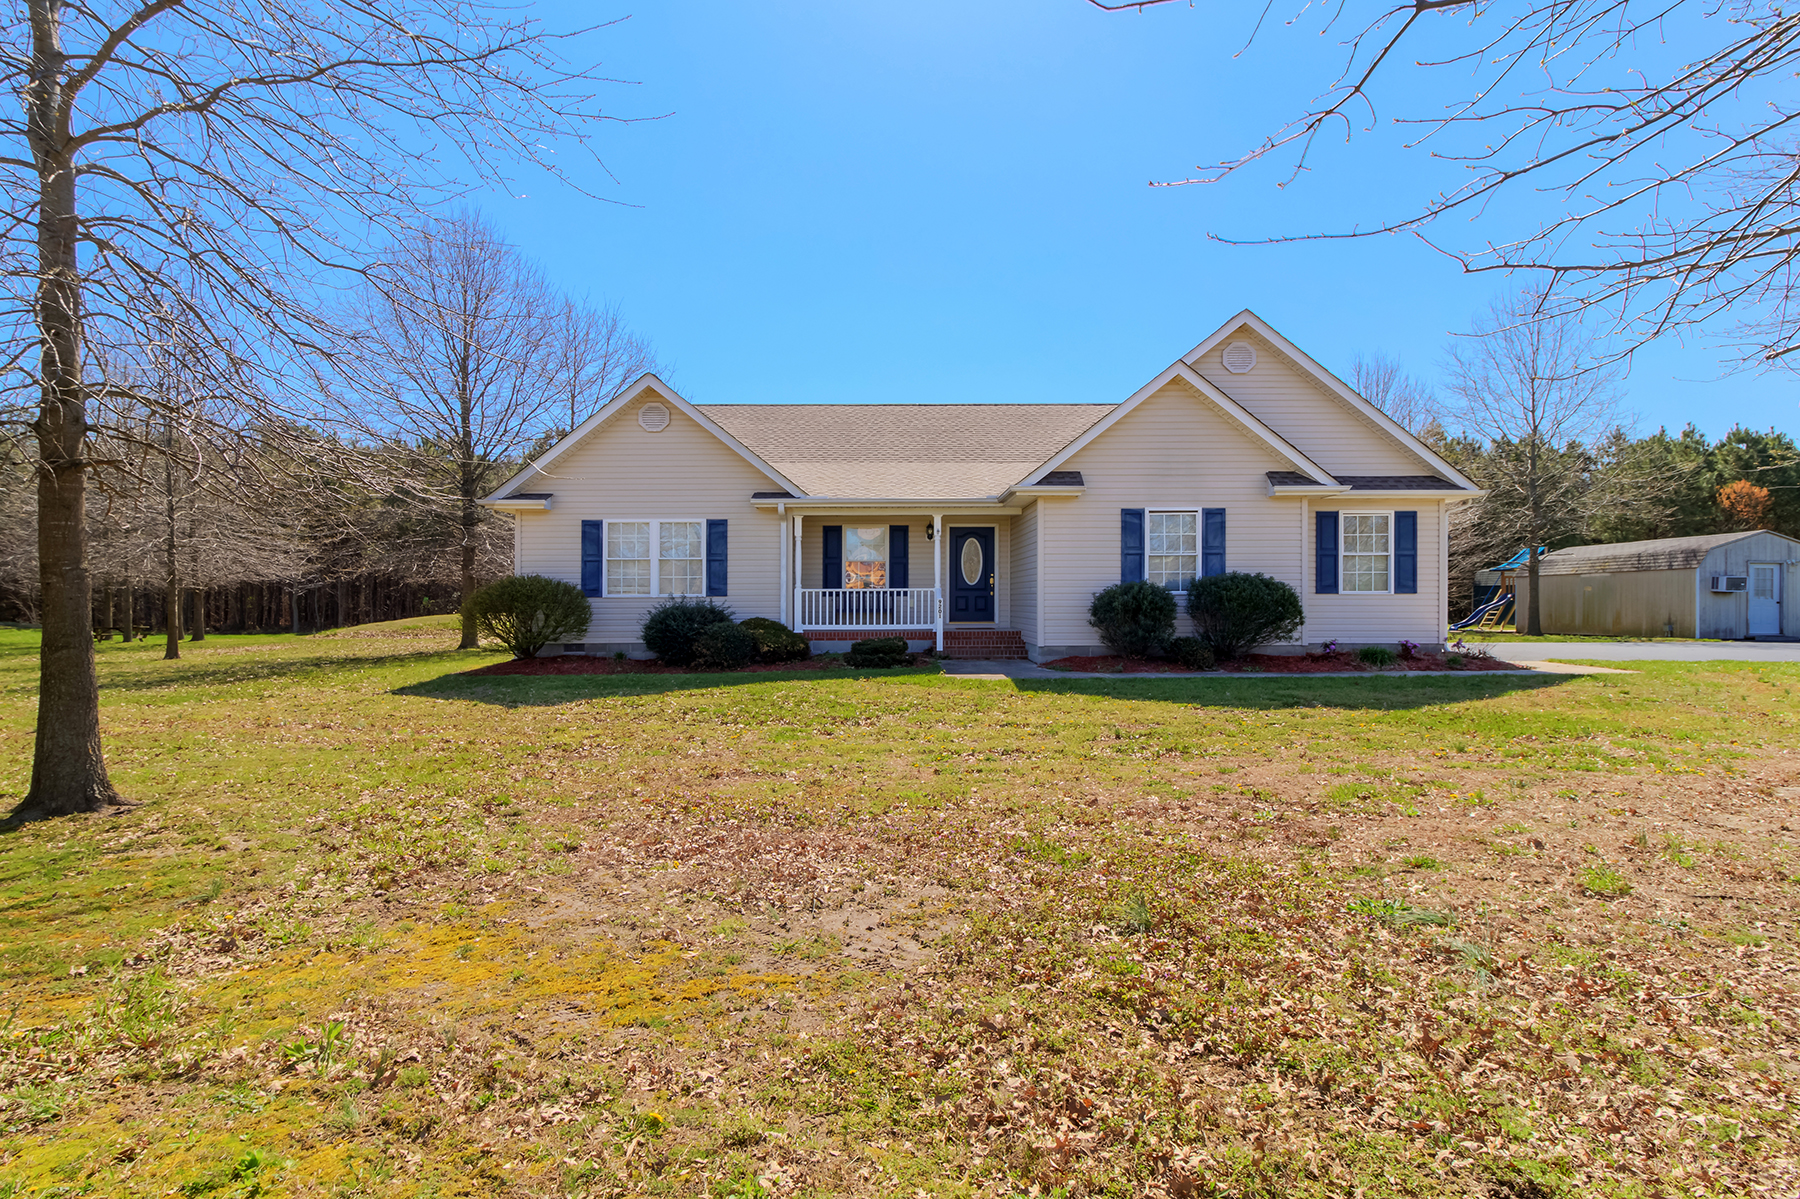 Single Family Home for Sale at 9201 Shawnee Rd , Greenwood (sussex), DE 19950 9201 Shawnee Rd, Greenwood, Delaware 19950 United States